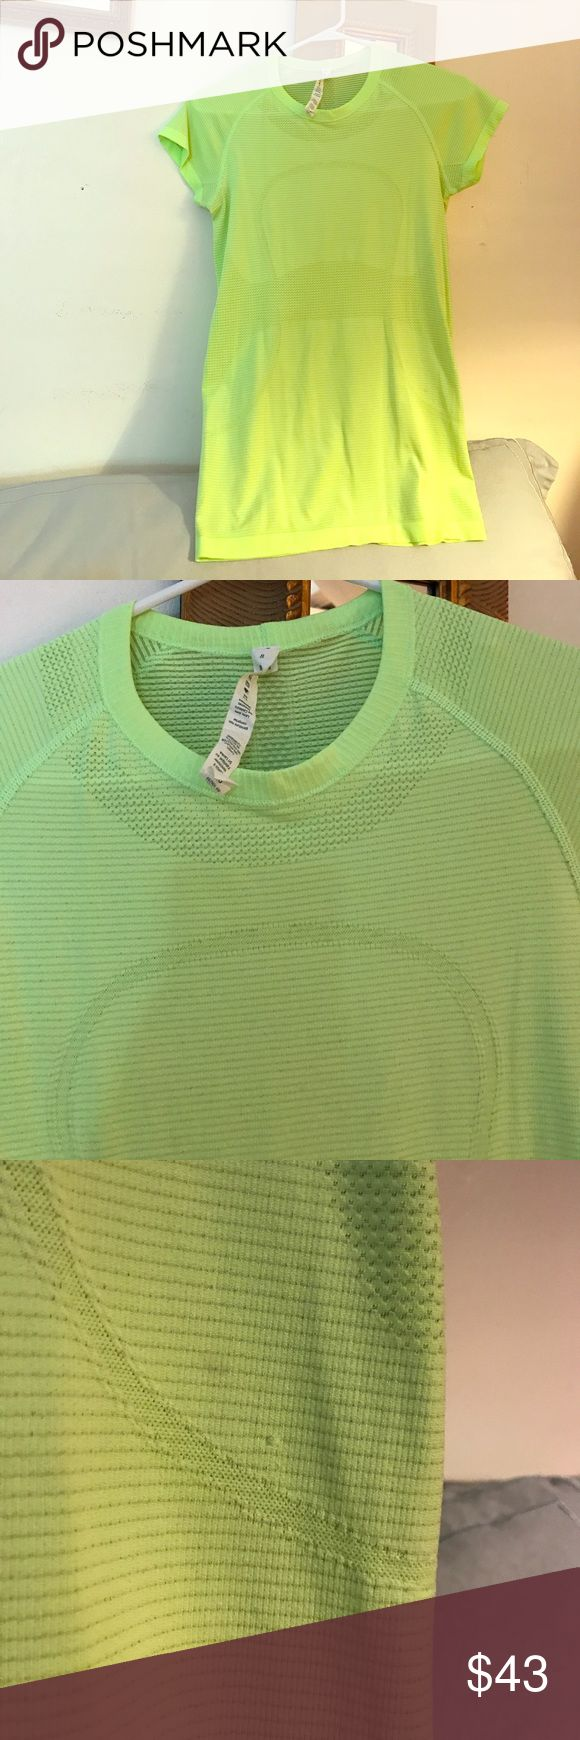 Lululemon Bright green or lime green top in great condition one small snag and mark but can be remove. lululemon athletica Tops Tees - Short Sleeve